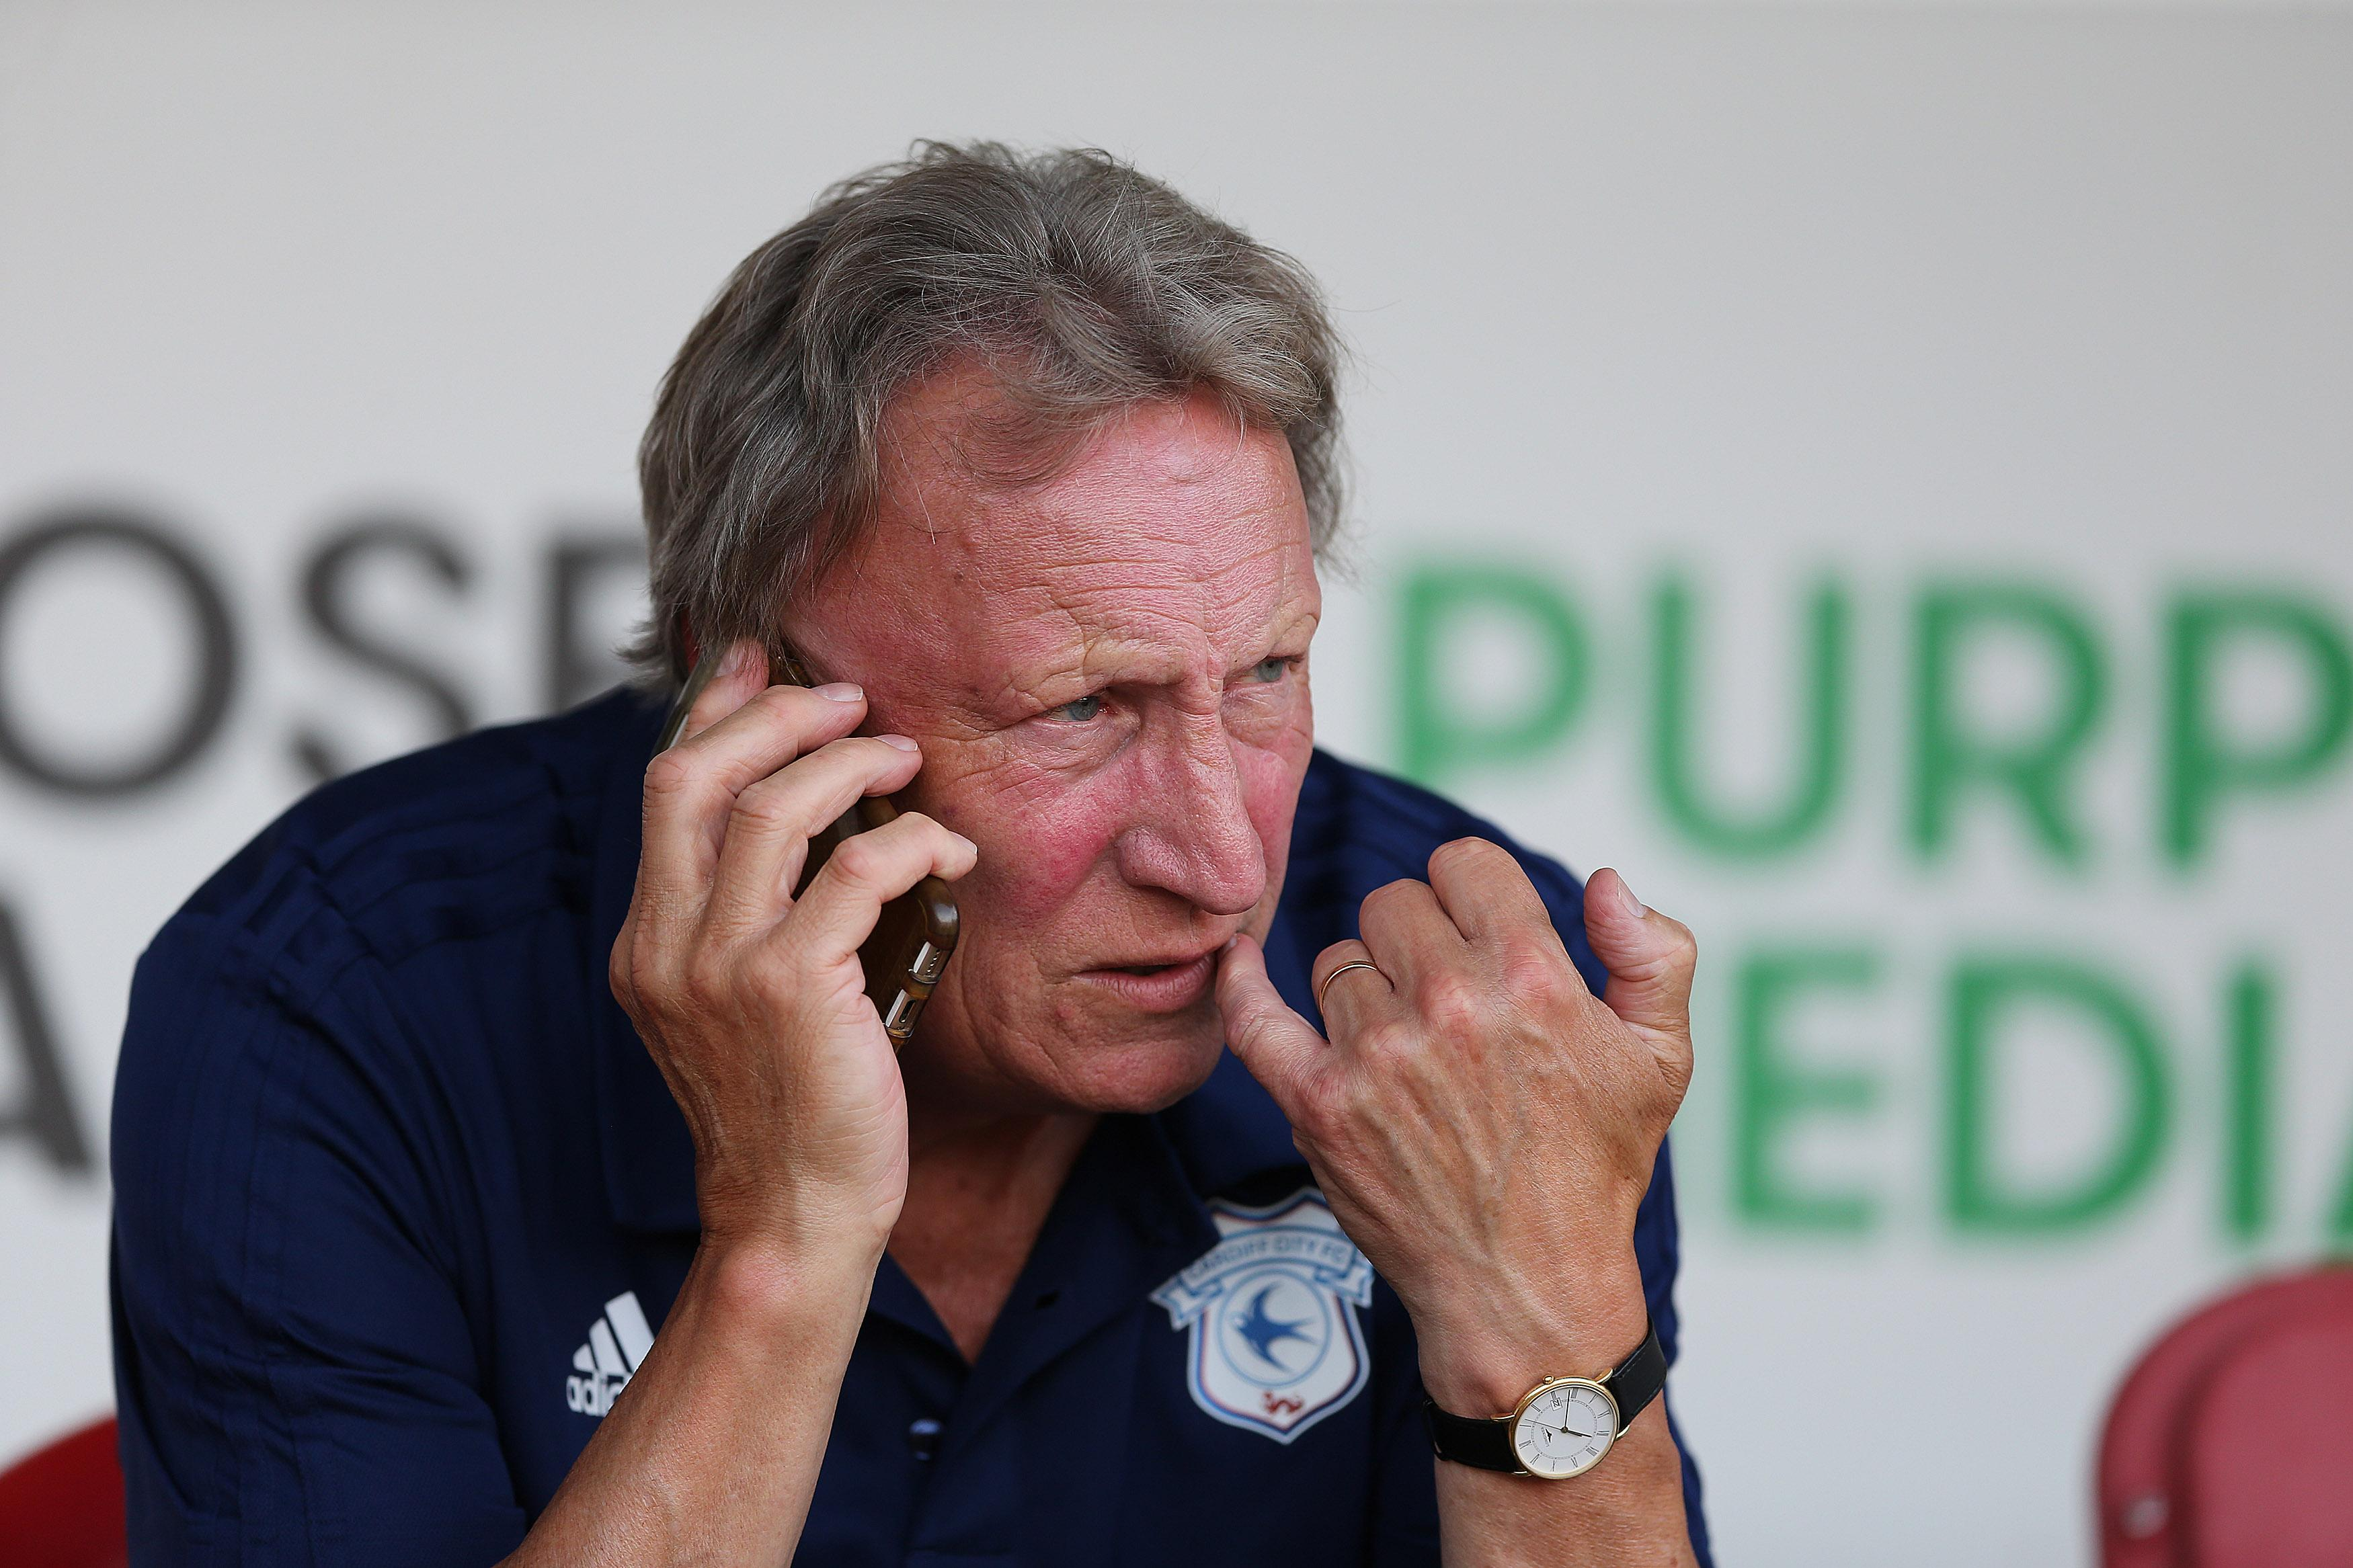 Is Neil Warnock on the phone to Jurgen Klopp thrashing out a deal for Marko Grujic?